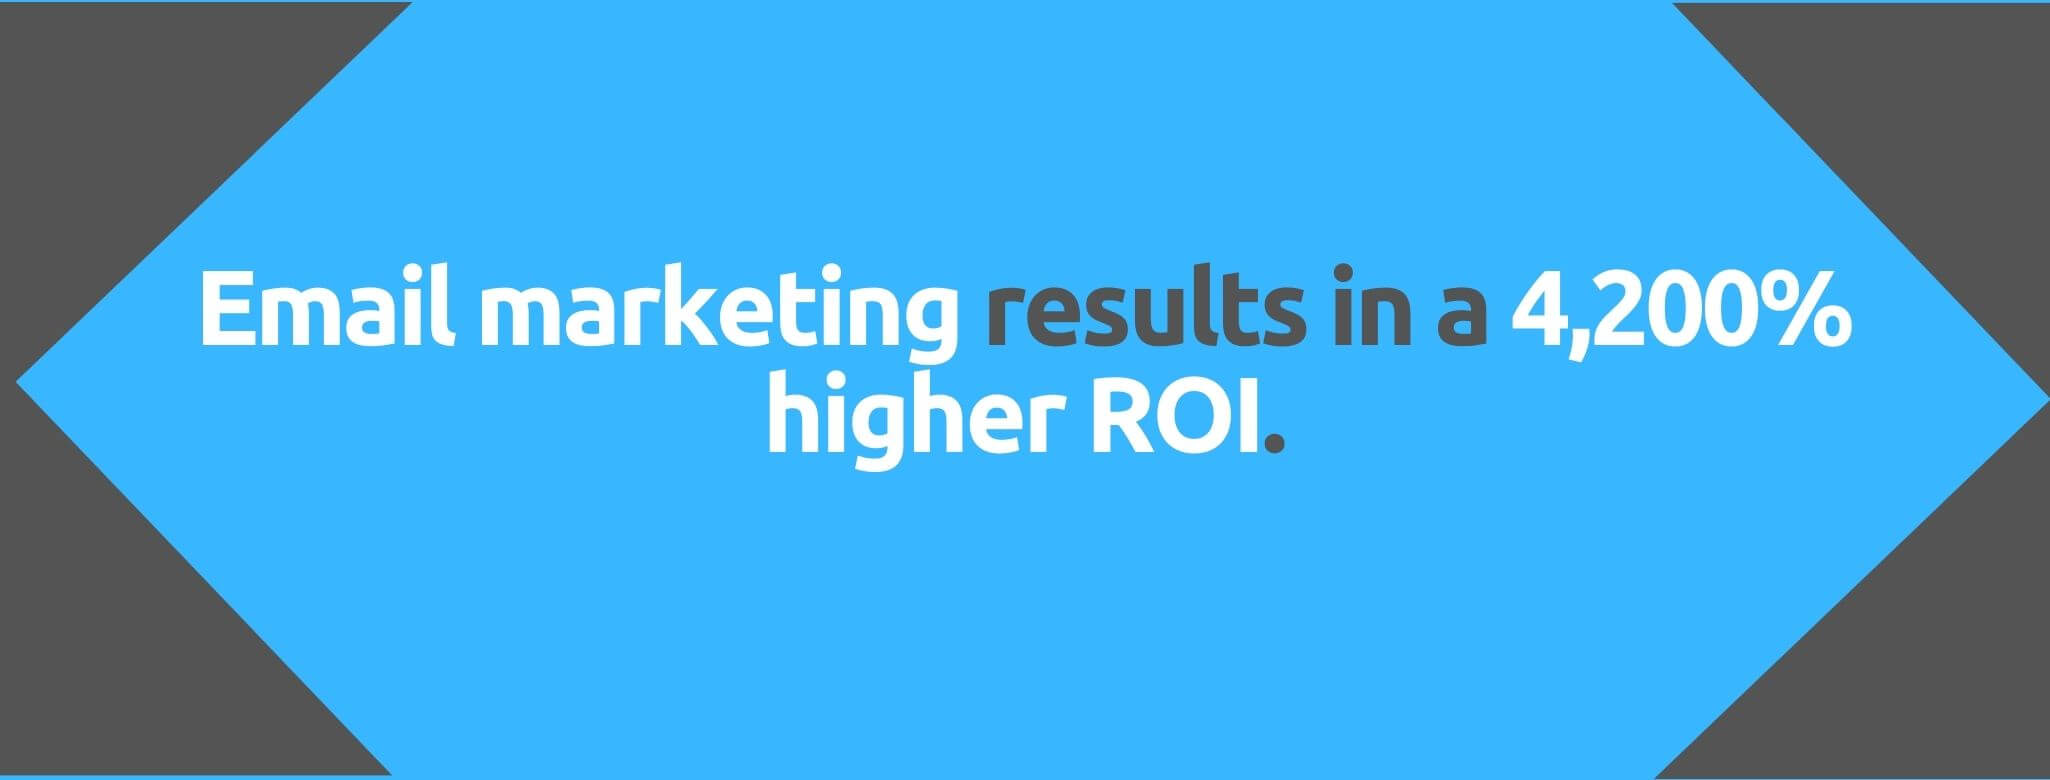 Email marketing results in a 4,200% higher ROI - 80+ Email Marketing Stats - Replyco Helpdesk Software for eCommerce